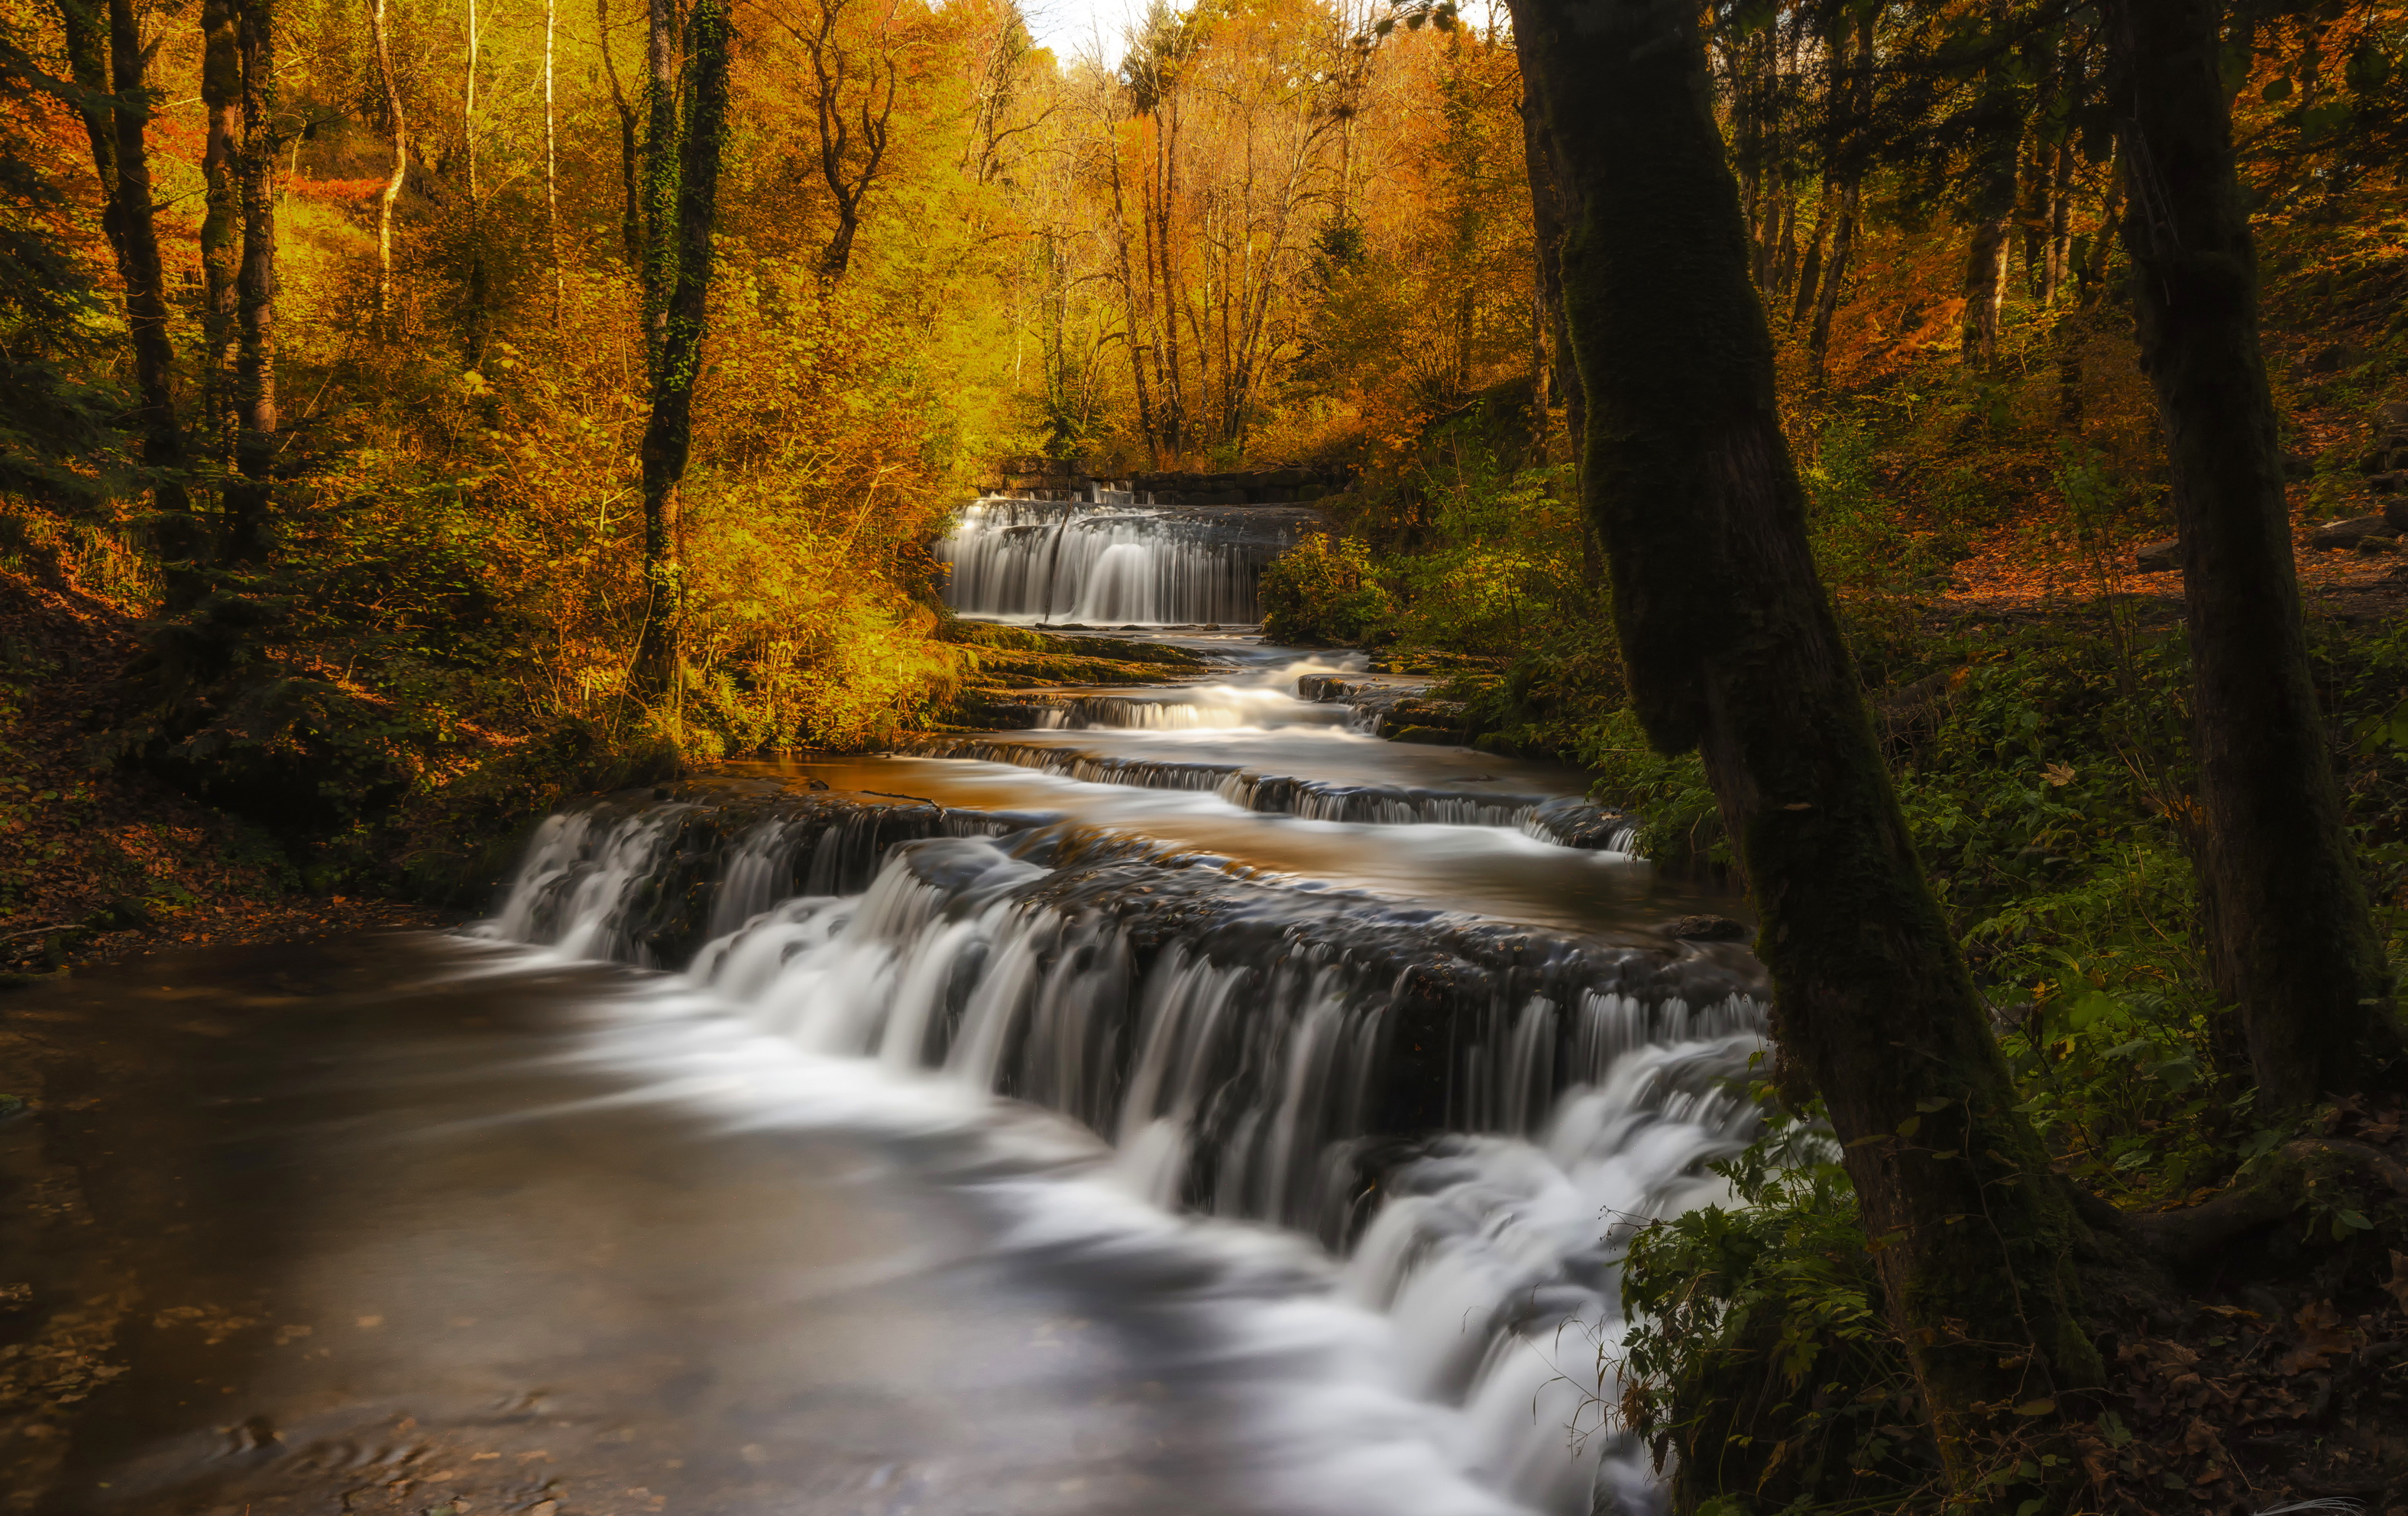 Windows 10 Fall Usa Wallpapers 4k Cascading Waterfall In Autumn Forest Full Hd Wallpaper And